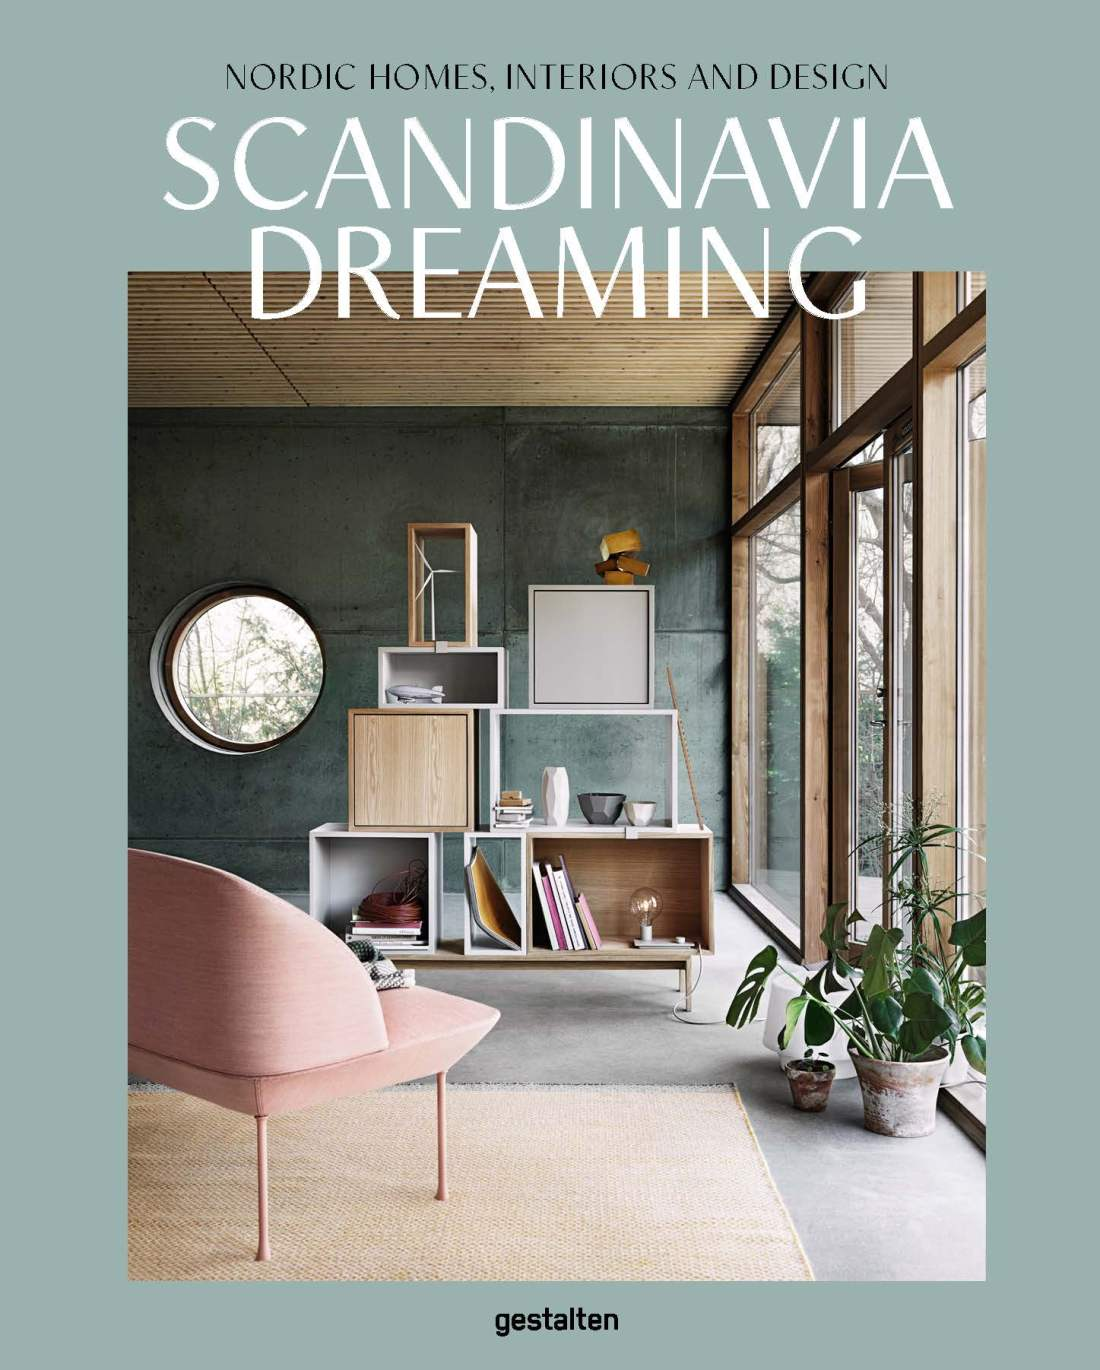 scandinavia dreaming nordic homes interiors and design keen on walls